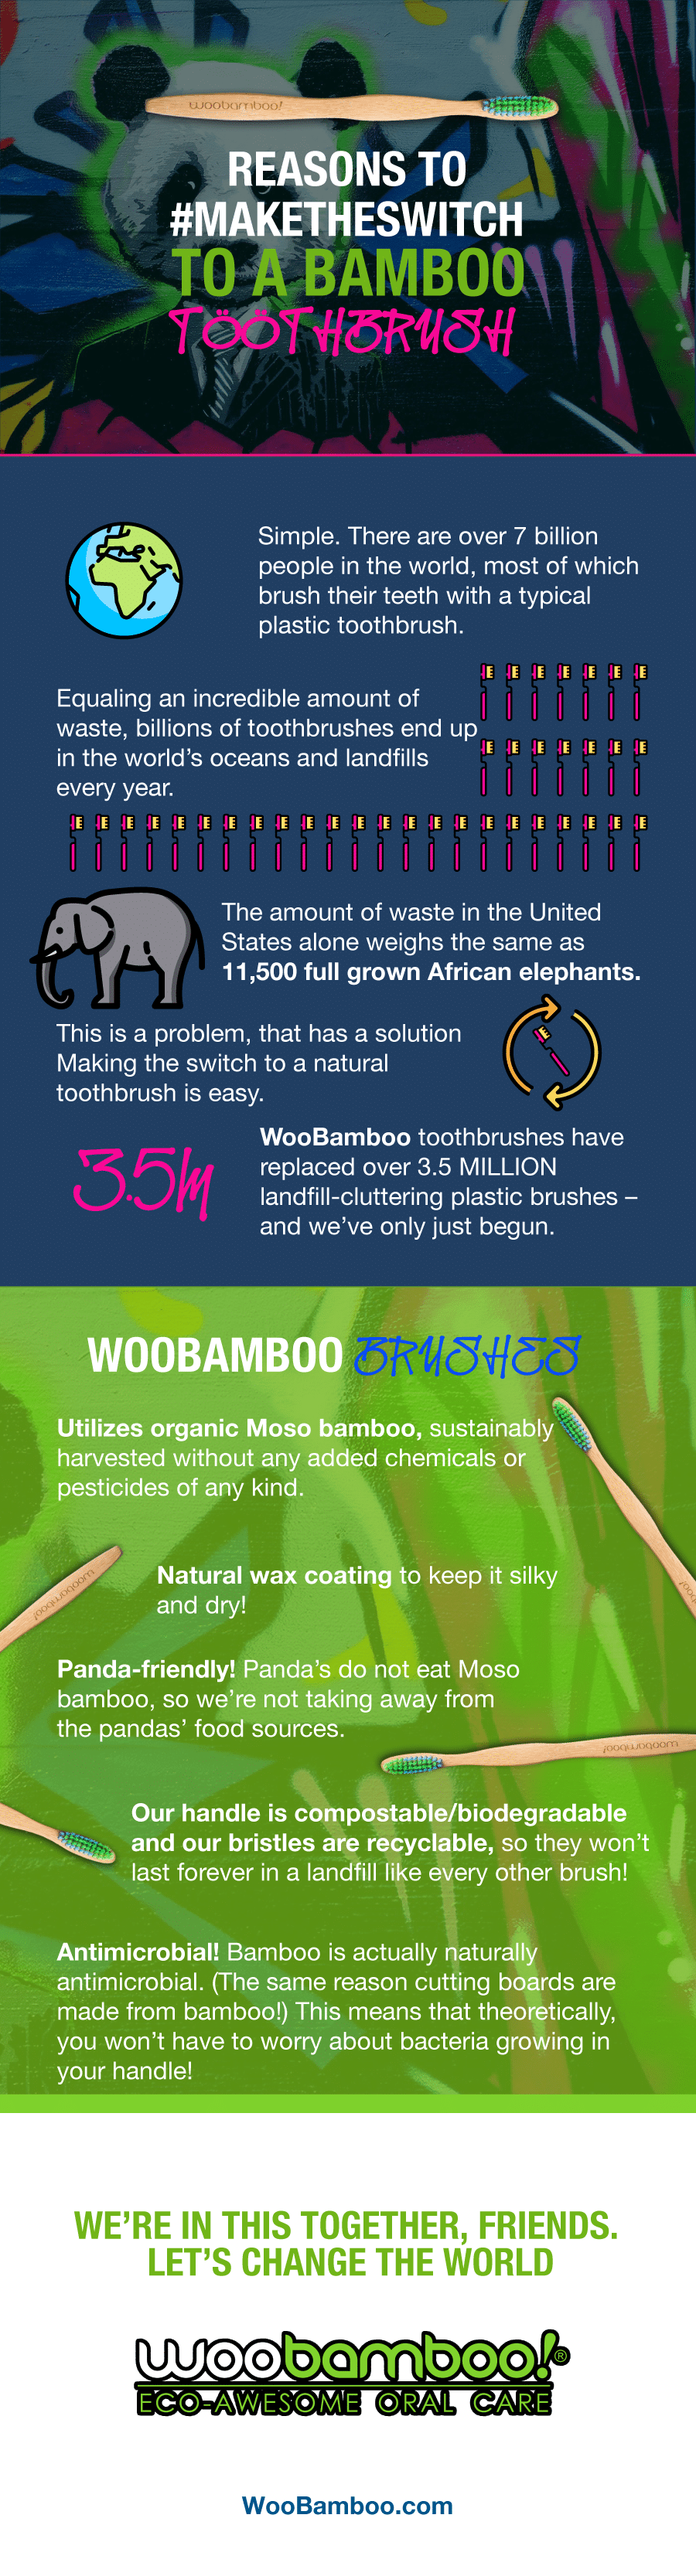 Reasons to #maketheswitch to a Bamboo Toothbrush